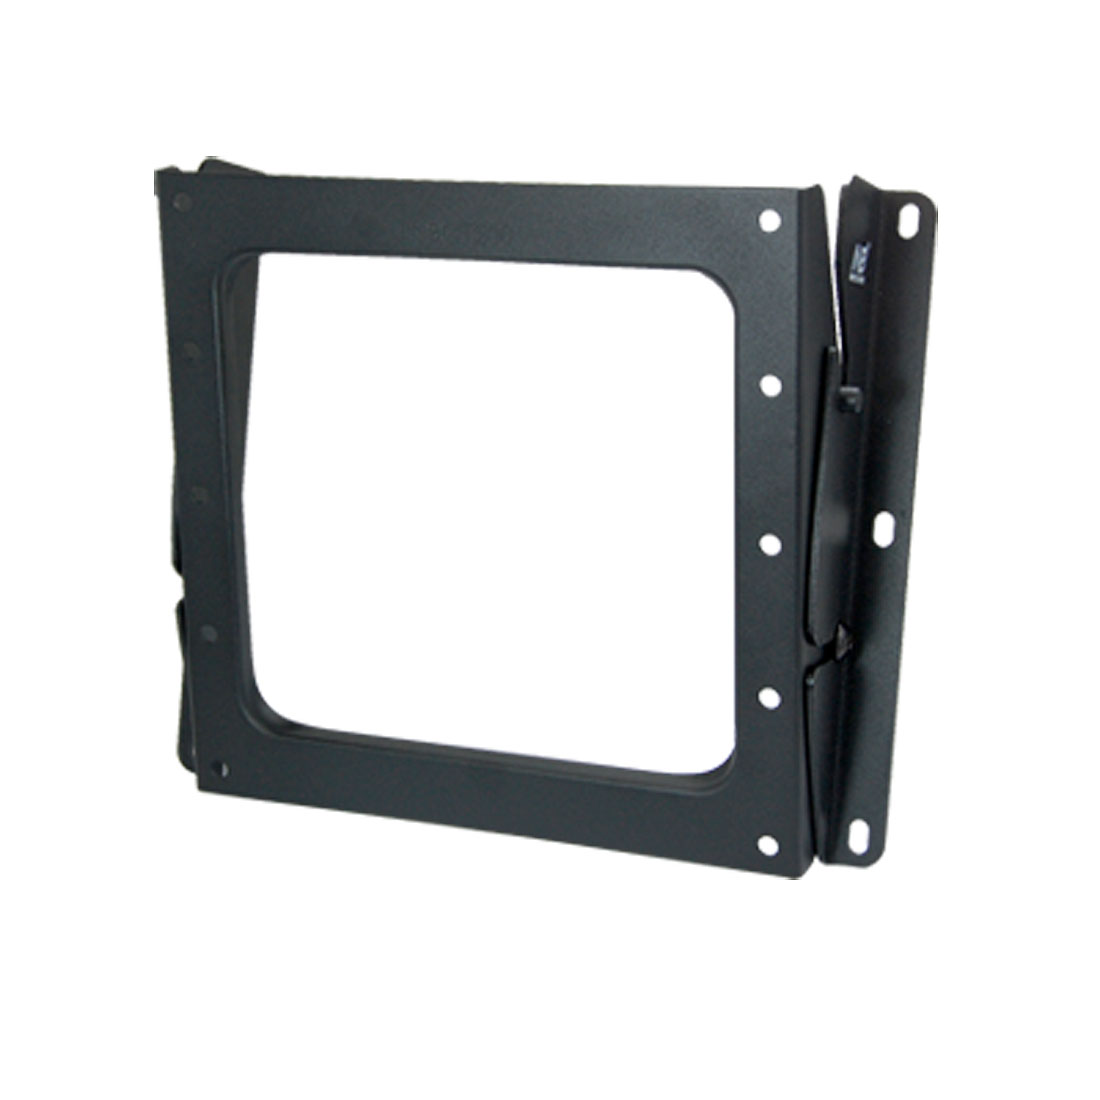 LCD TV LED Plasma Universal VESA Wall Mount Tilt Bracket 26 27 30 32 37 40 42 46